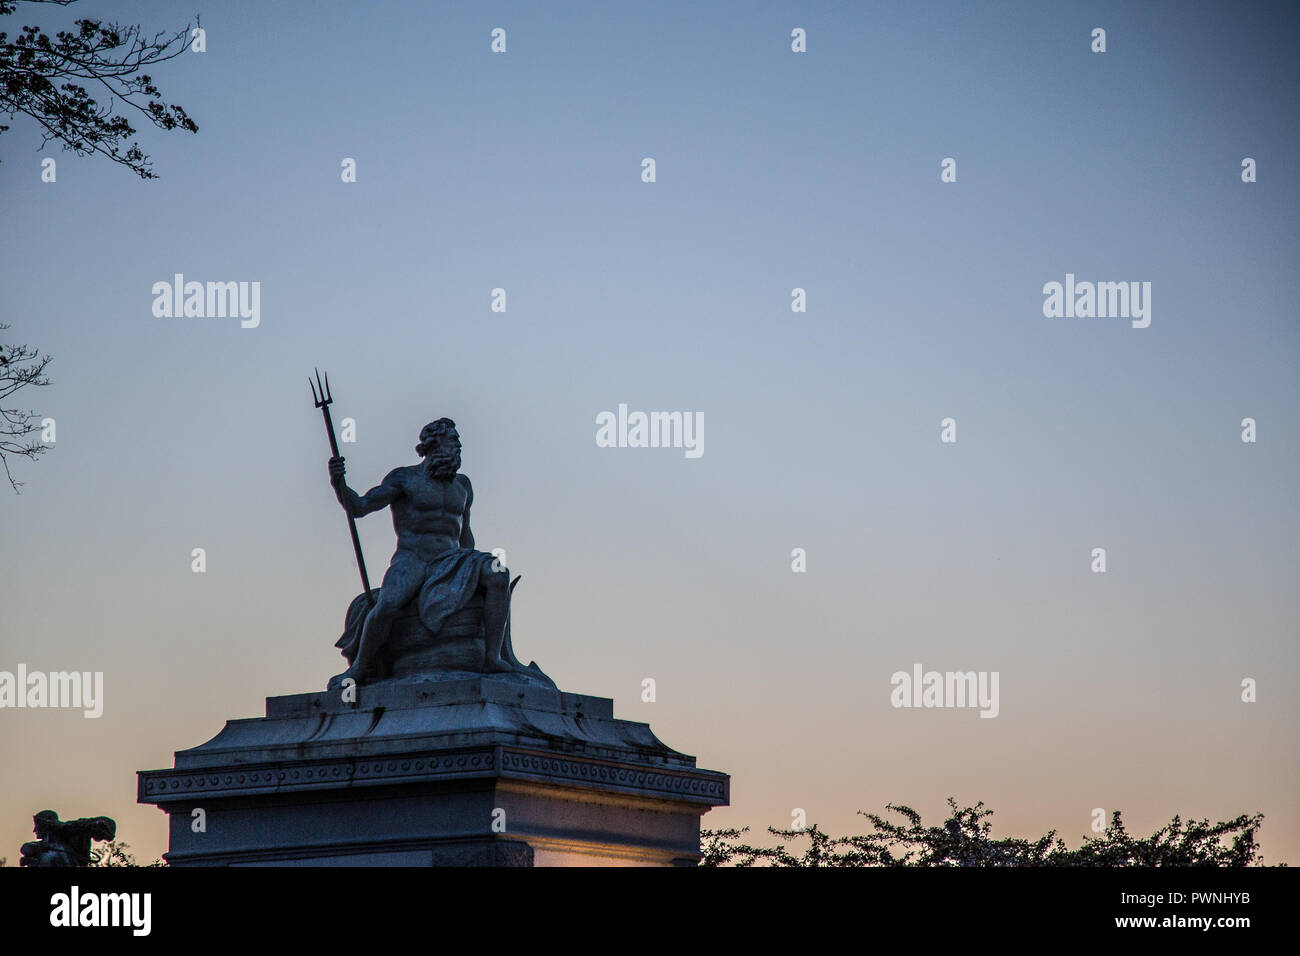 Statue of the Greek god of the sea, Poseidon, located in the port of Copenhagen during sunset (blue hour) - Stock Image